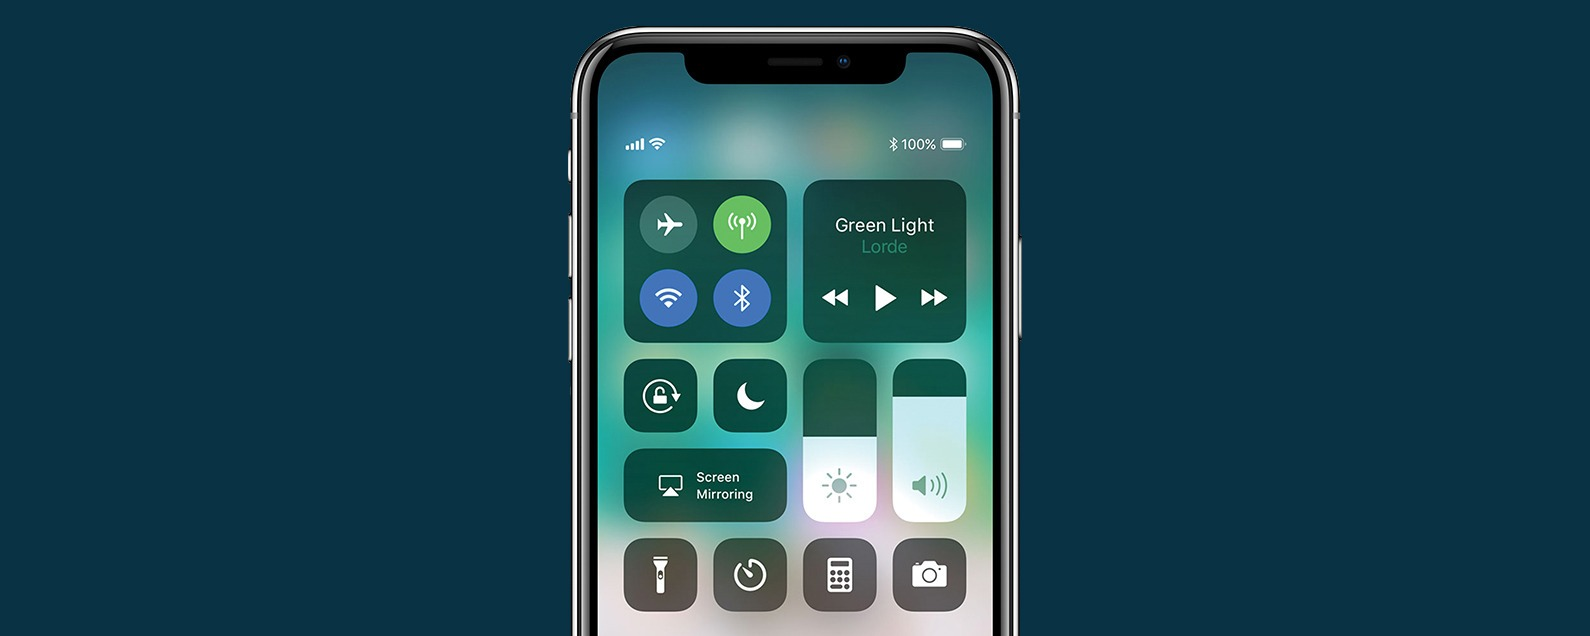 How to Access Control Center on iPhone XS | iPhoneLife com